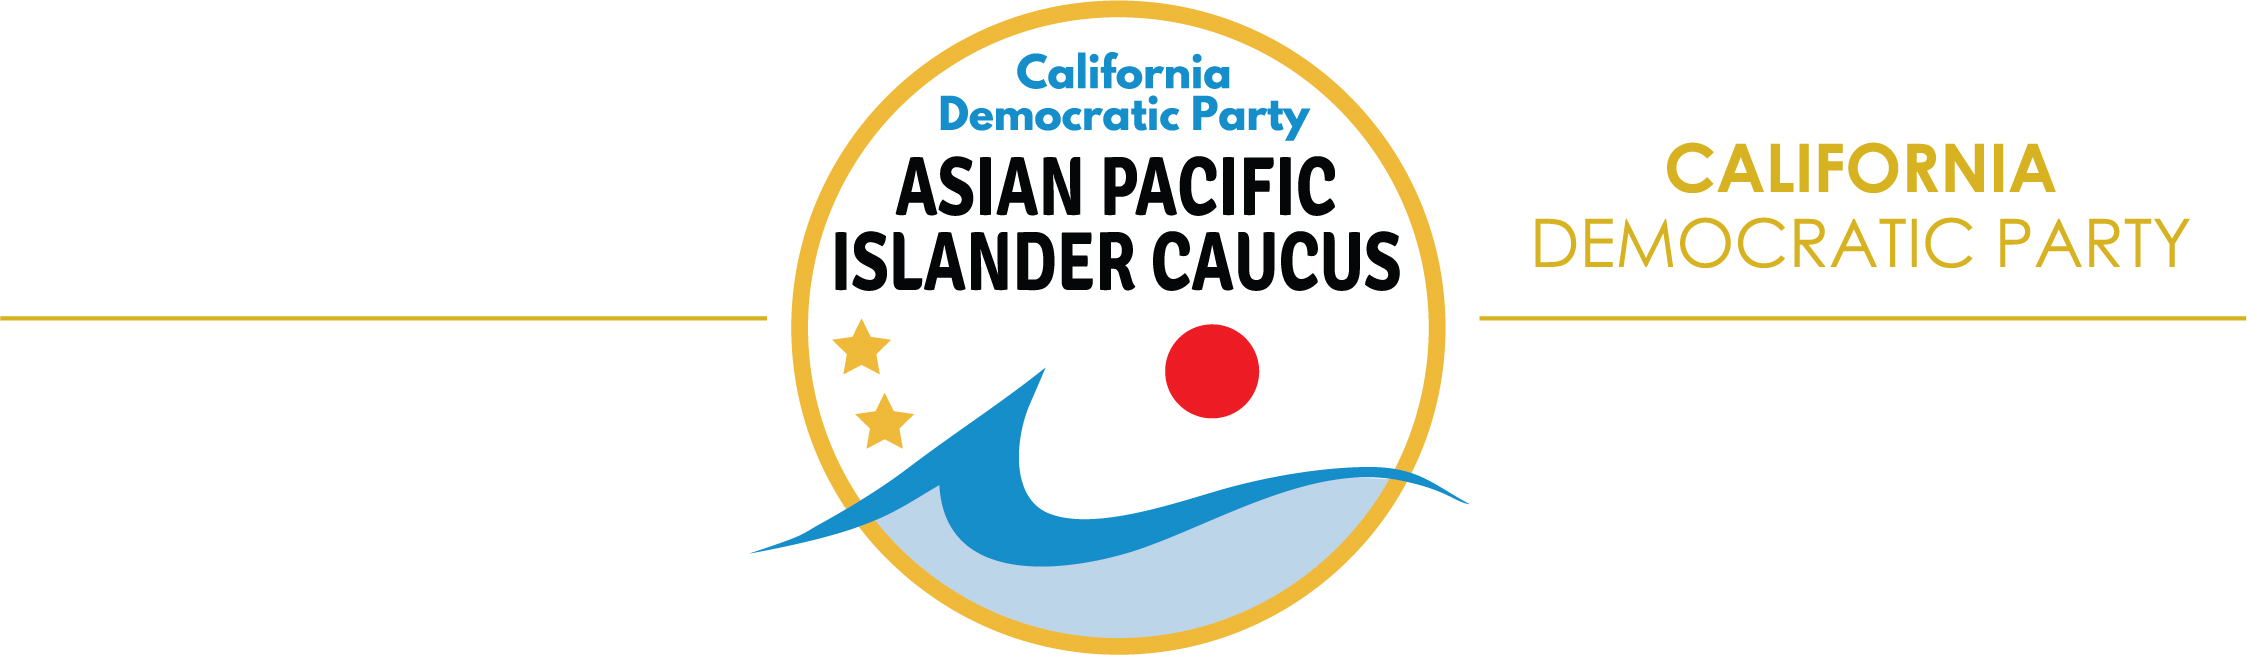 Asian Pacific Islander Caucus